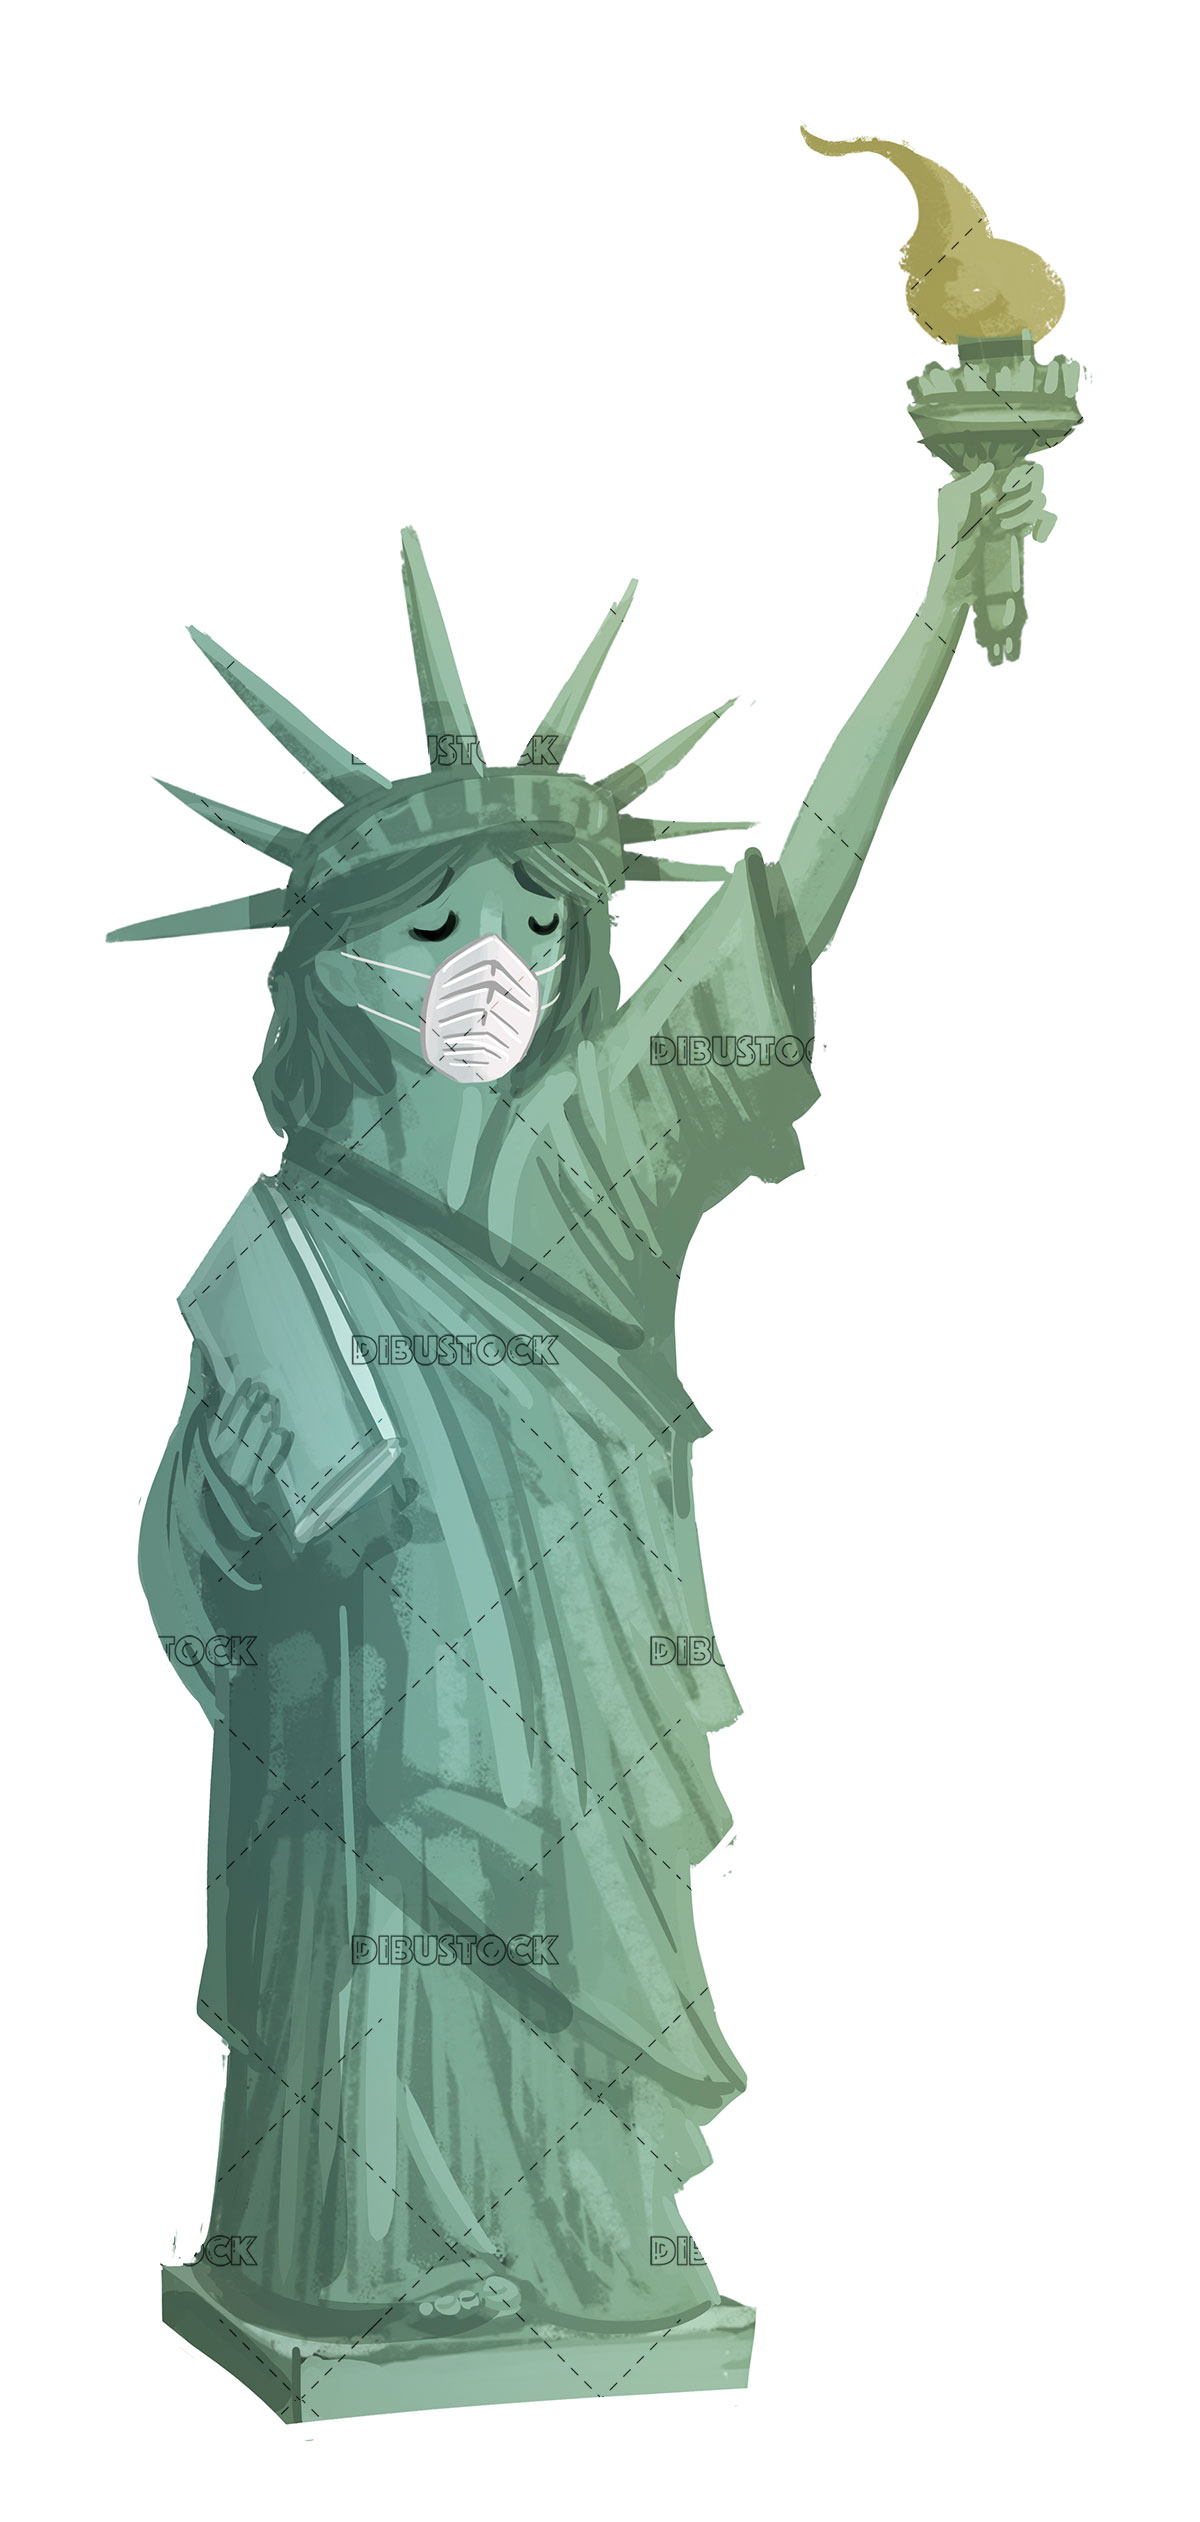 statue of liberty with protection mask